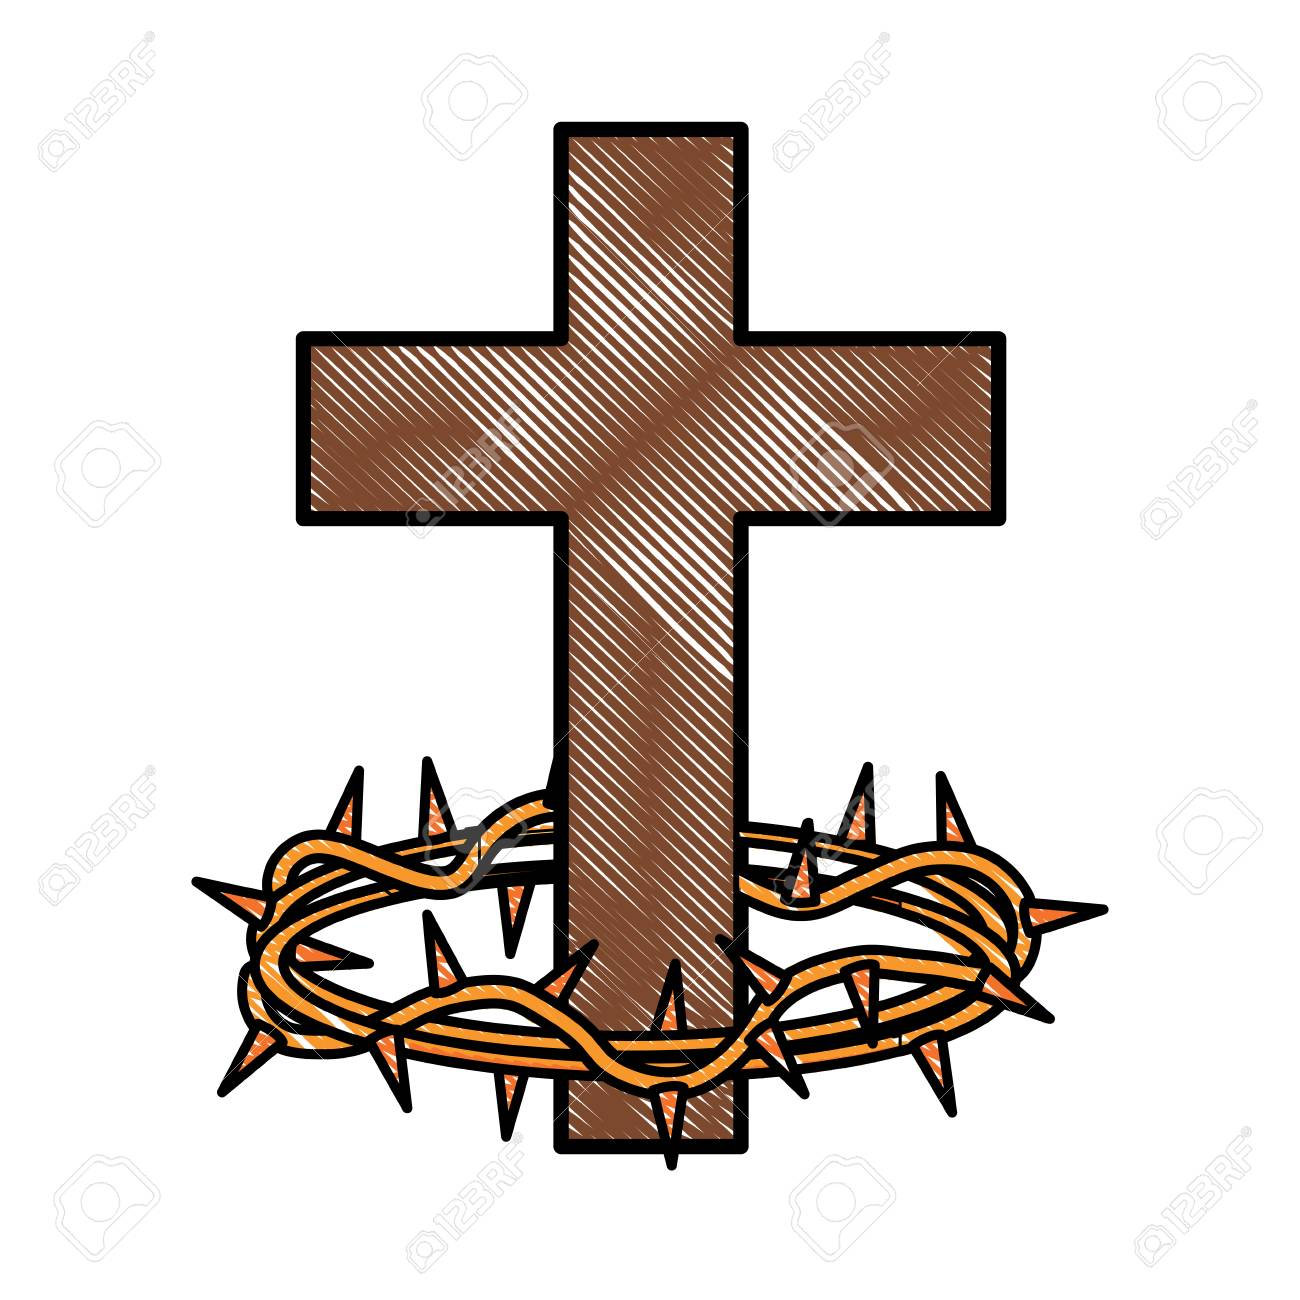 a catholic cross and crown of thorns icon over white background rh 123rf com